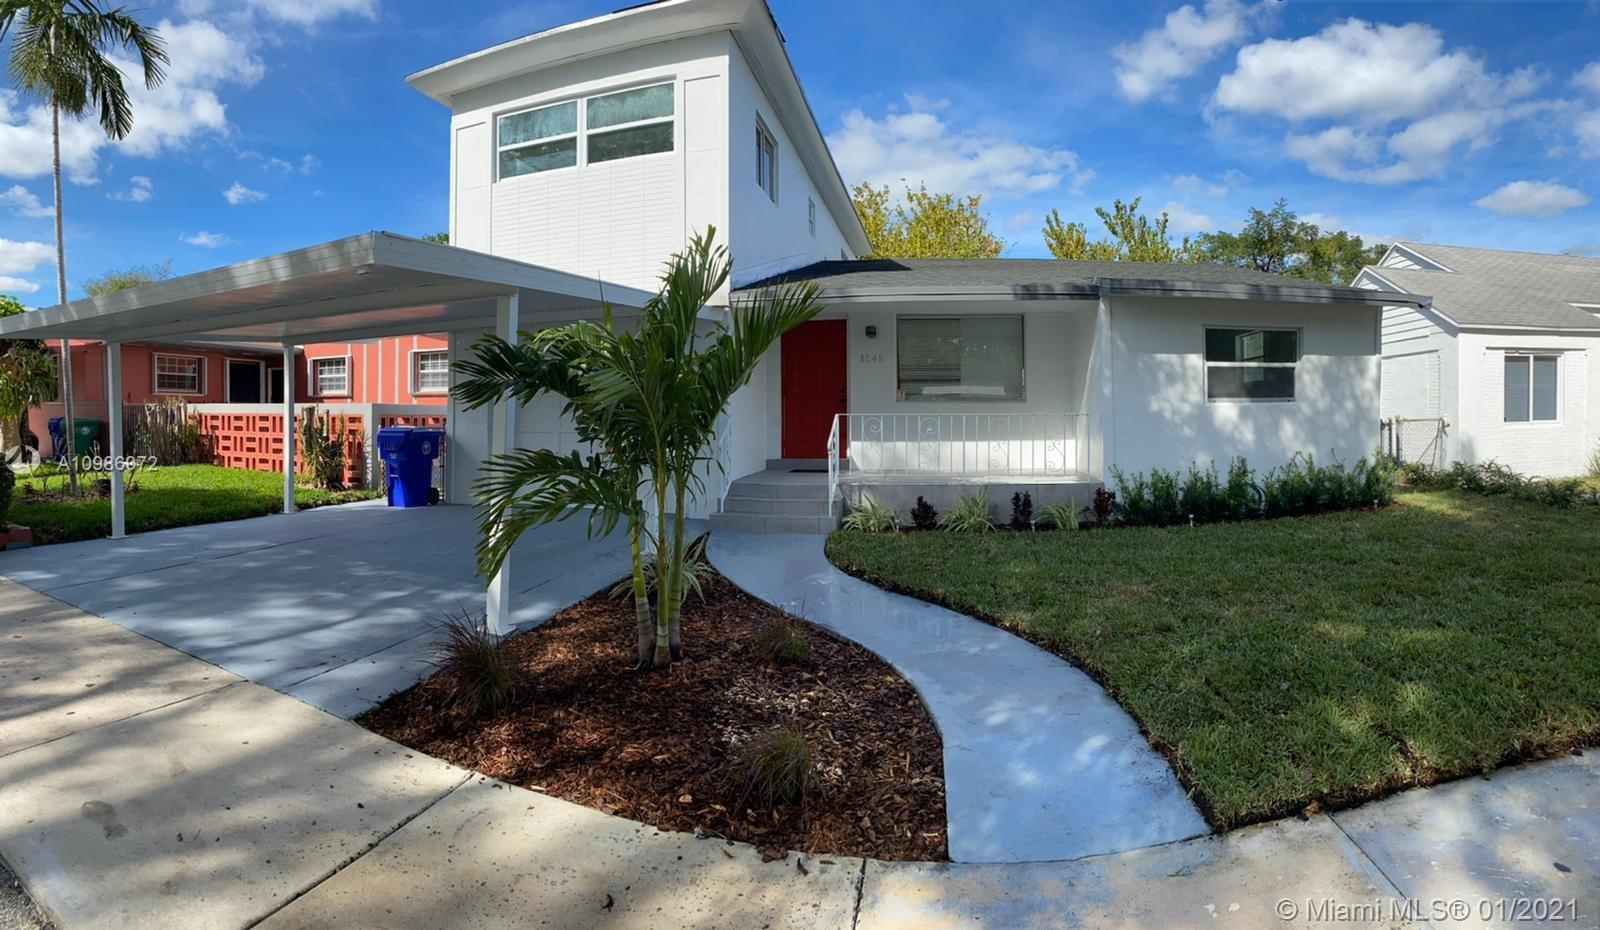 Details for 1045 47th St, Miami, FL 33127